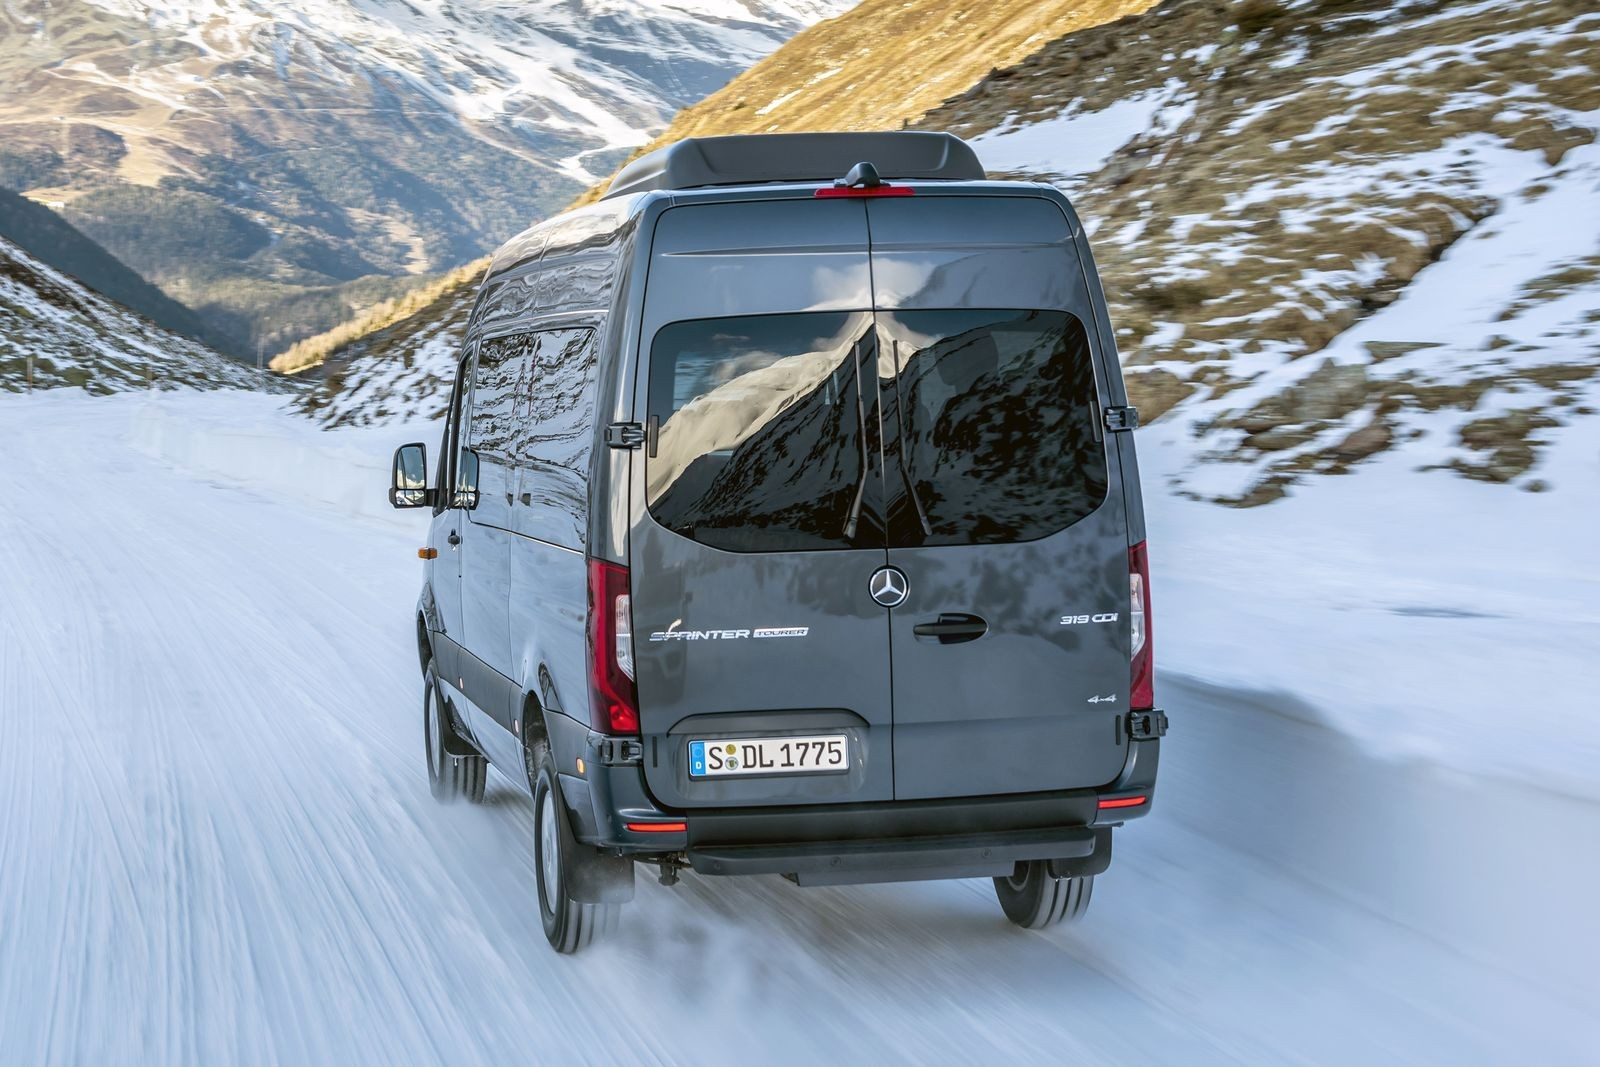 Ob Baustellenzufahrt oder auf Schnee und Eis: Neuer Sprinter ab sofort auch mit Allrad-Antrieb bestellbar Whether driving onto a construction site or through snow and ice: The new Sprinter now also available to order with